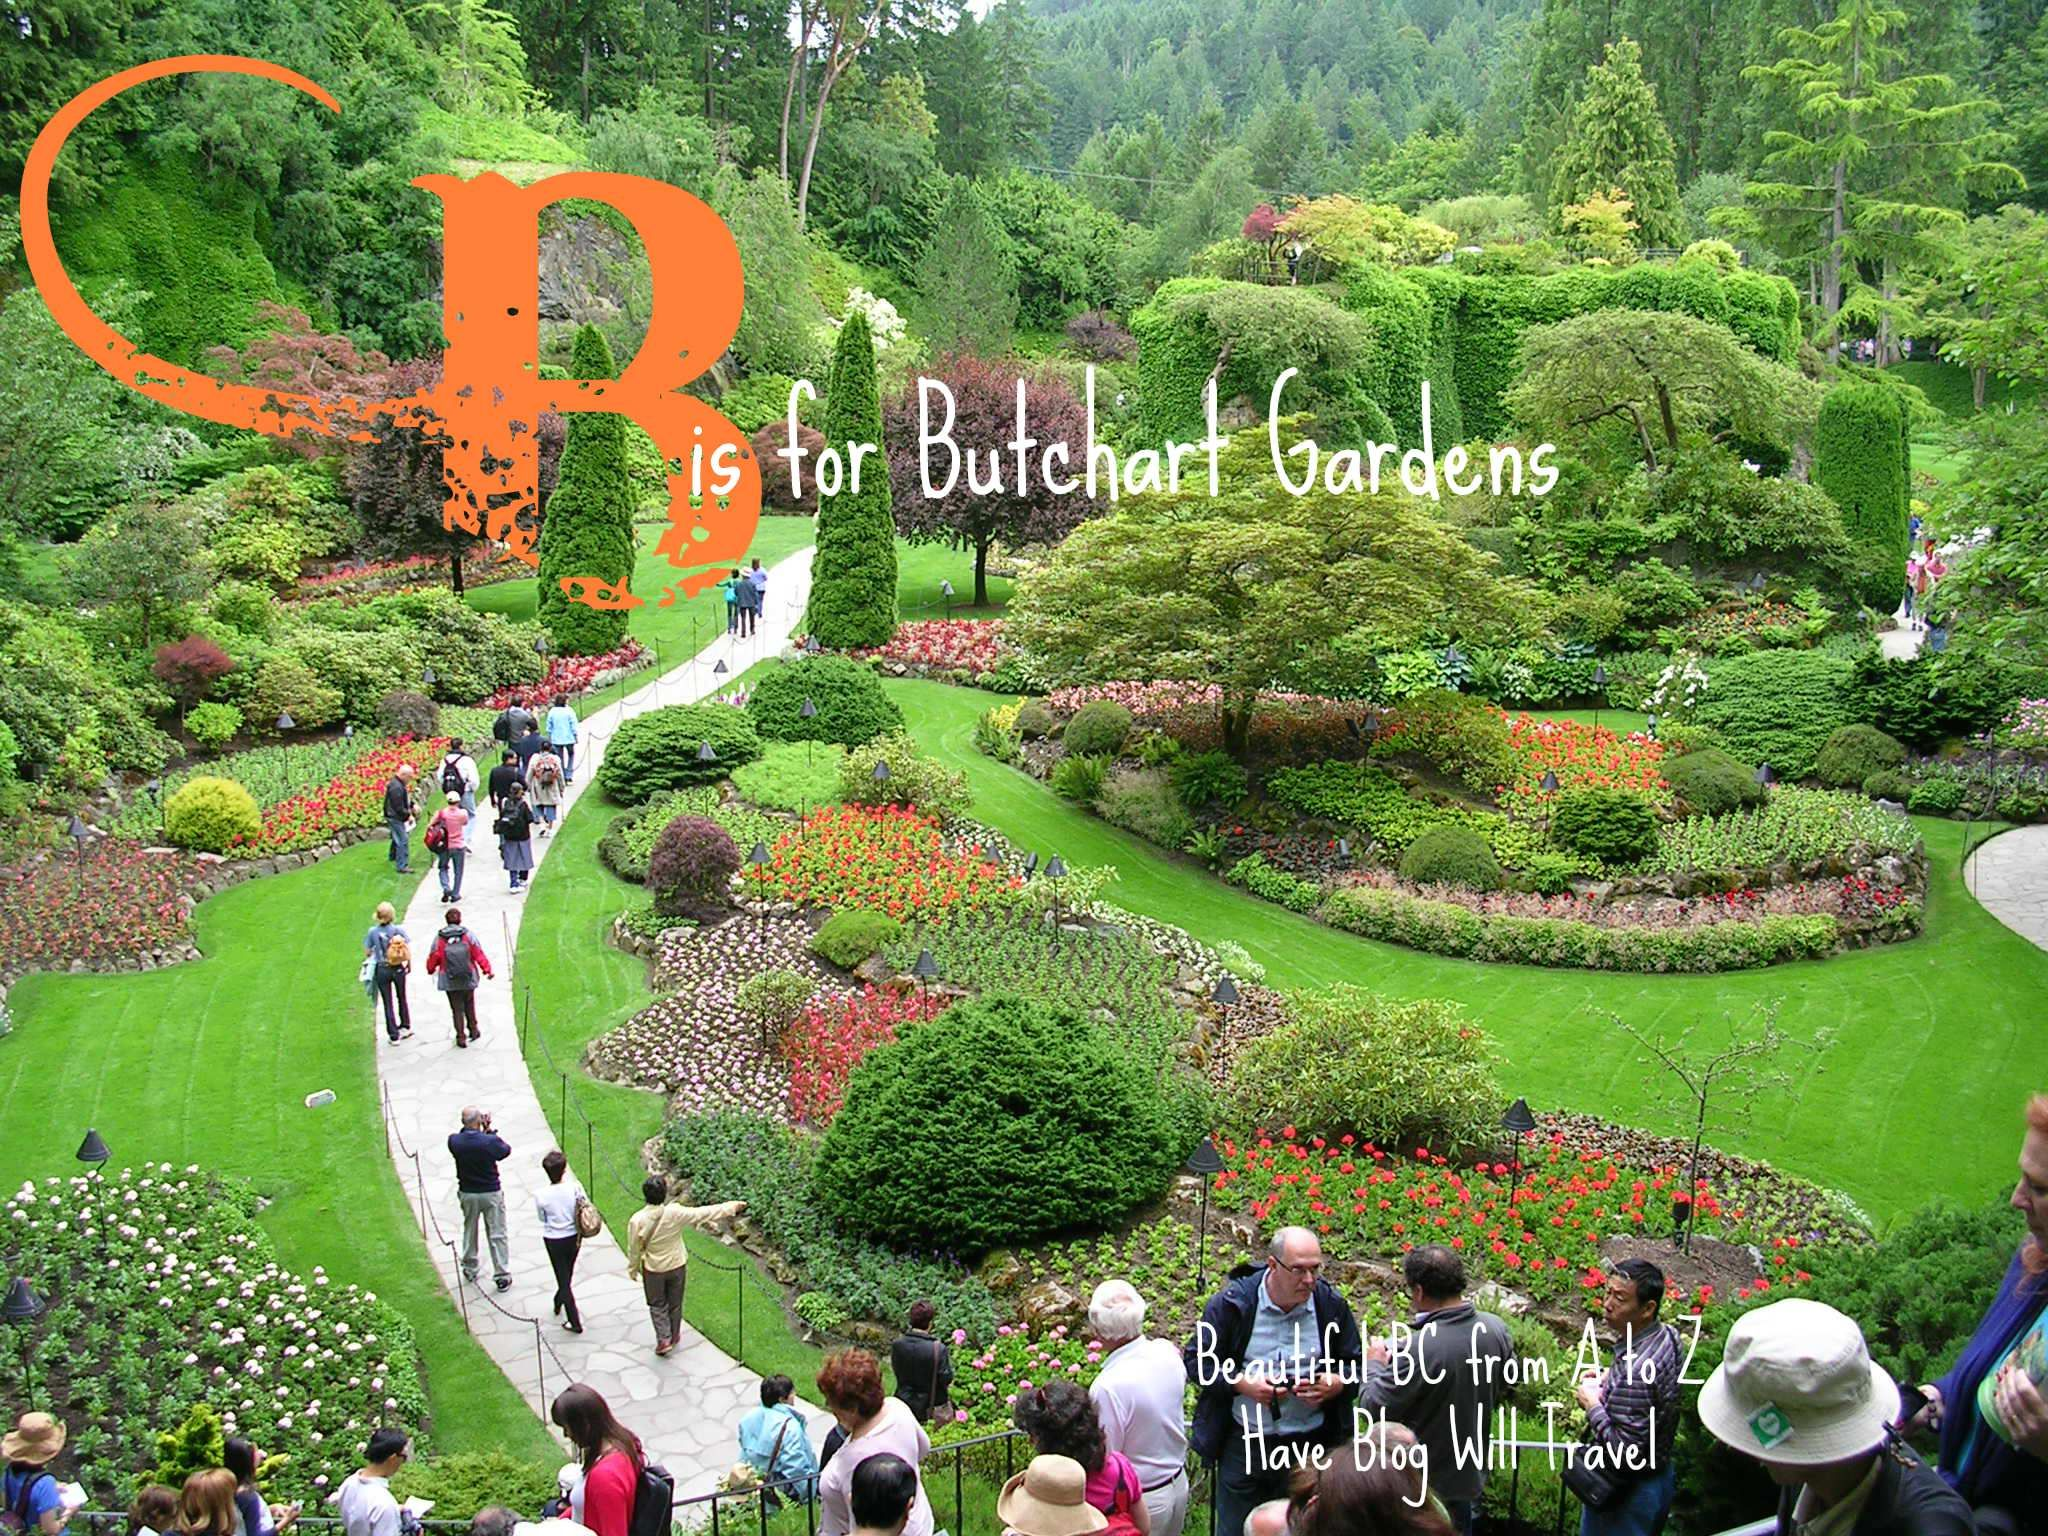 Beautiful BC from A to Z: B is for Butchart Gardens - Have Blog Will Travel